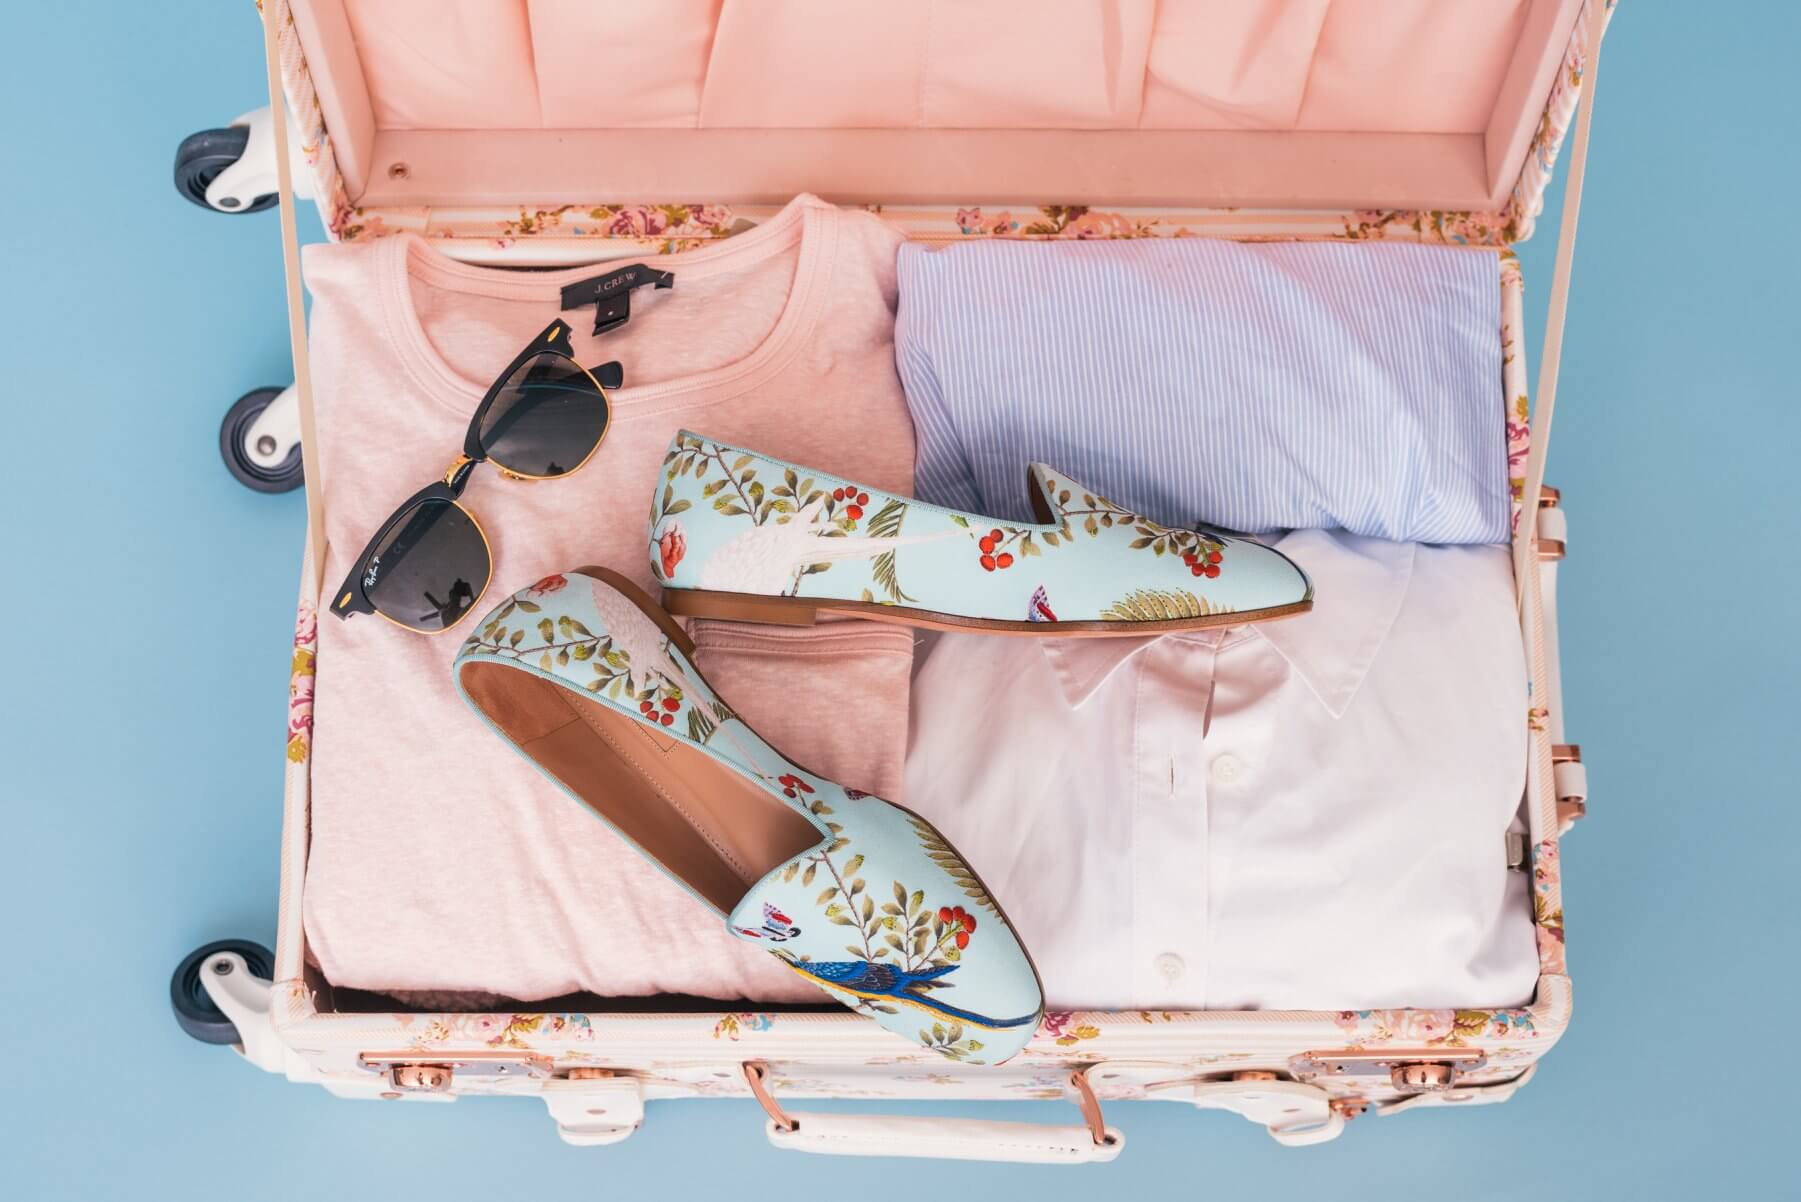 Smart travel packing tips and tricks that will change the way you travel